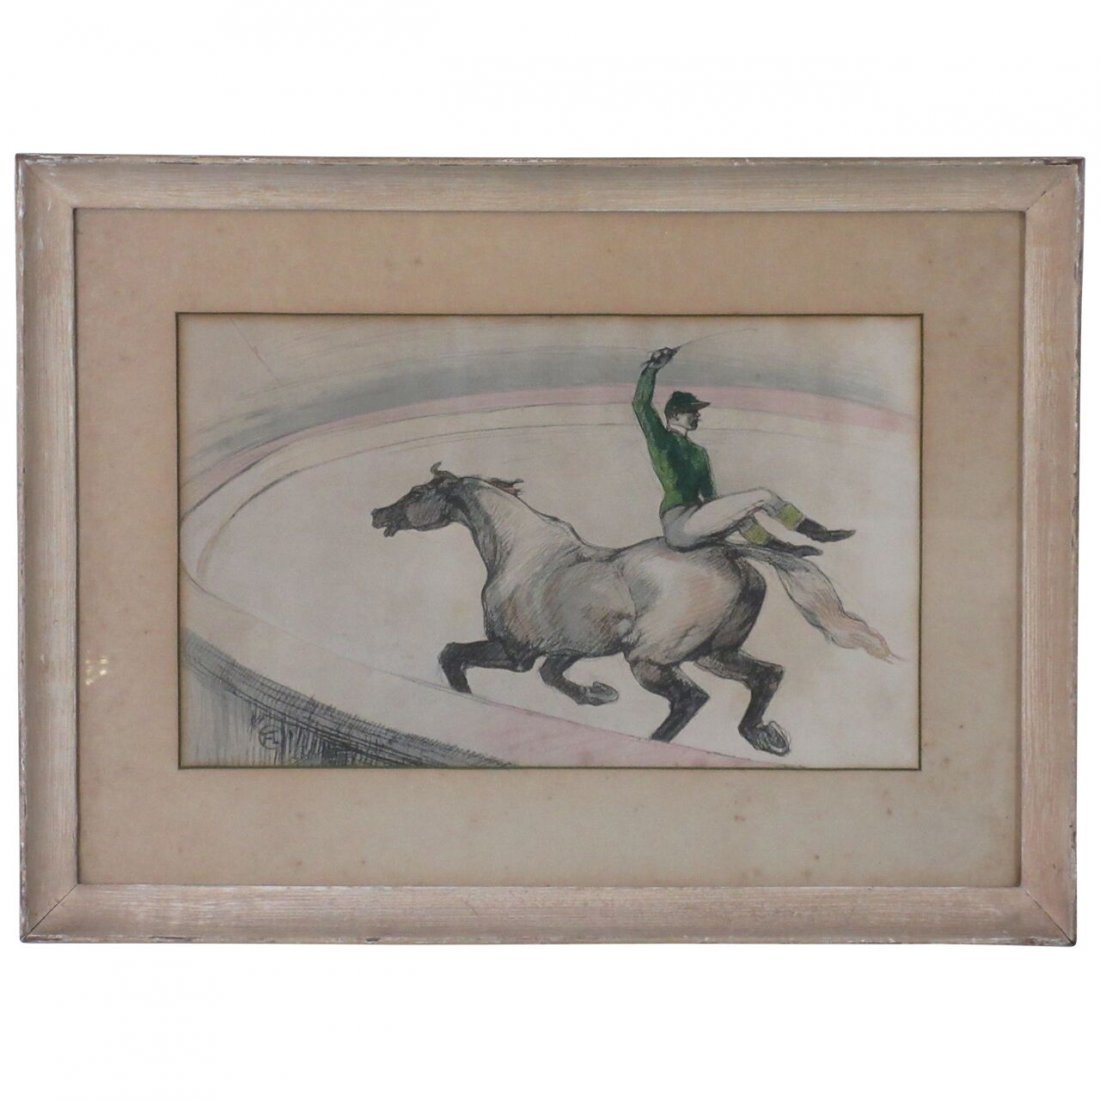 Toulouse-Lautrec circus lithograph on cardboard glued